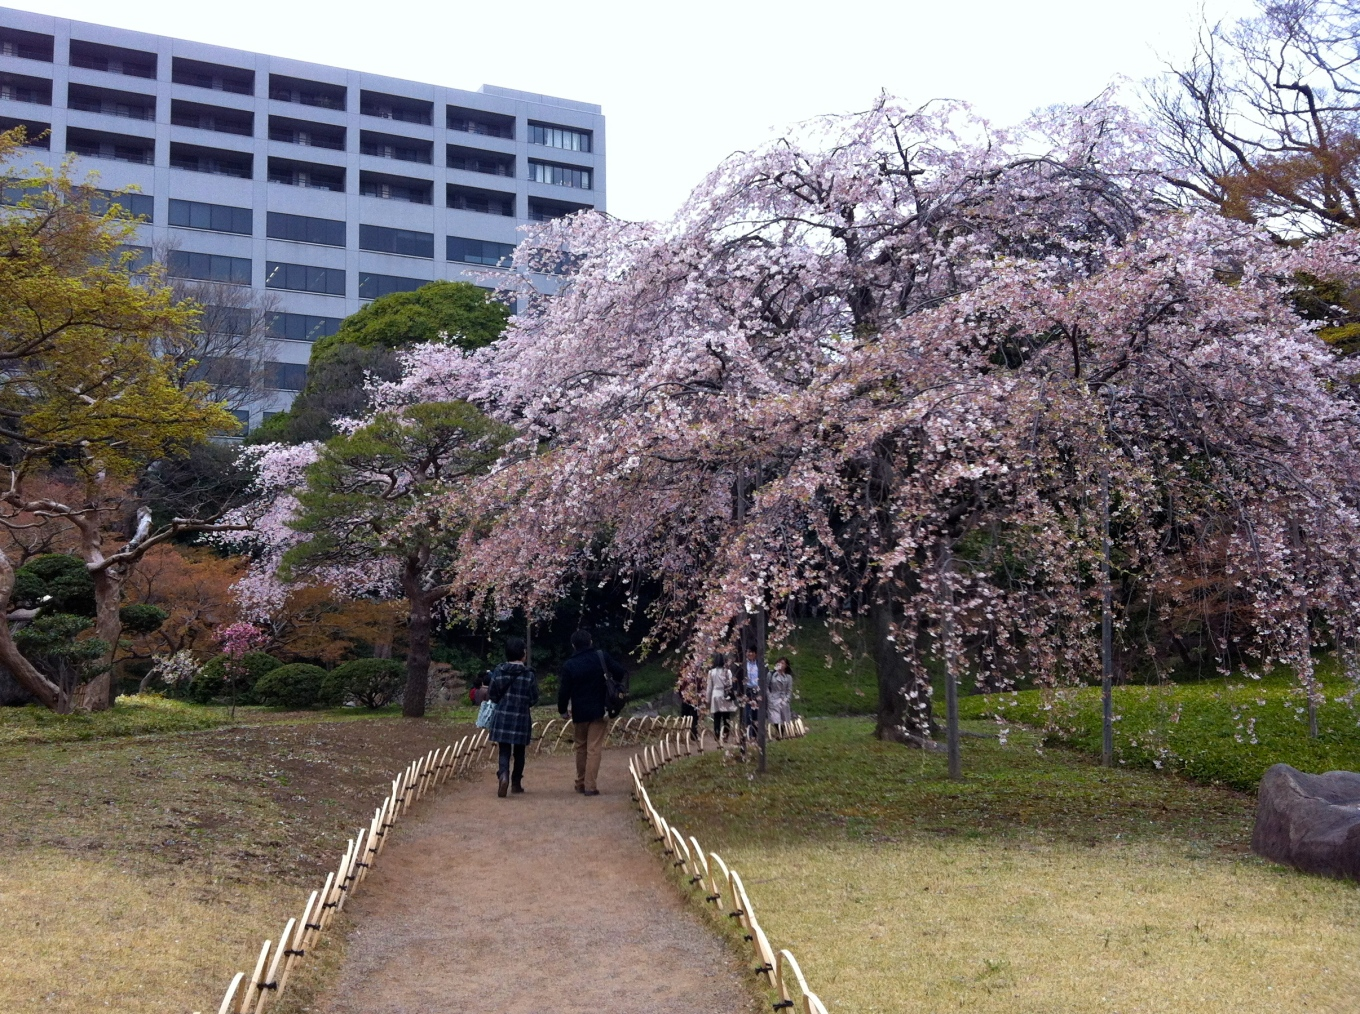 Full bloom at Koraku-en garden